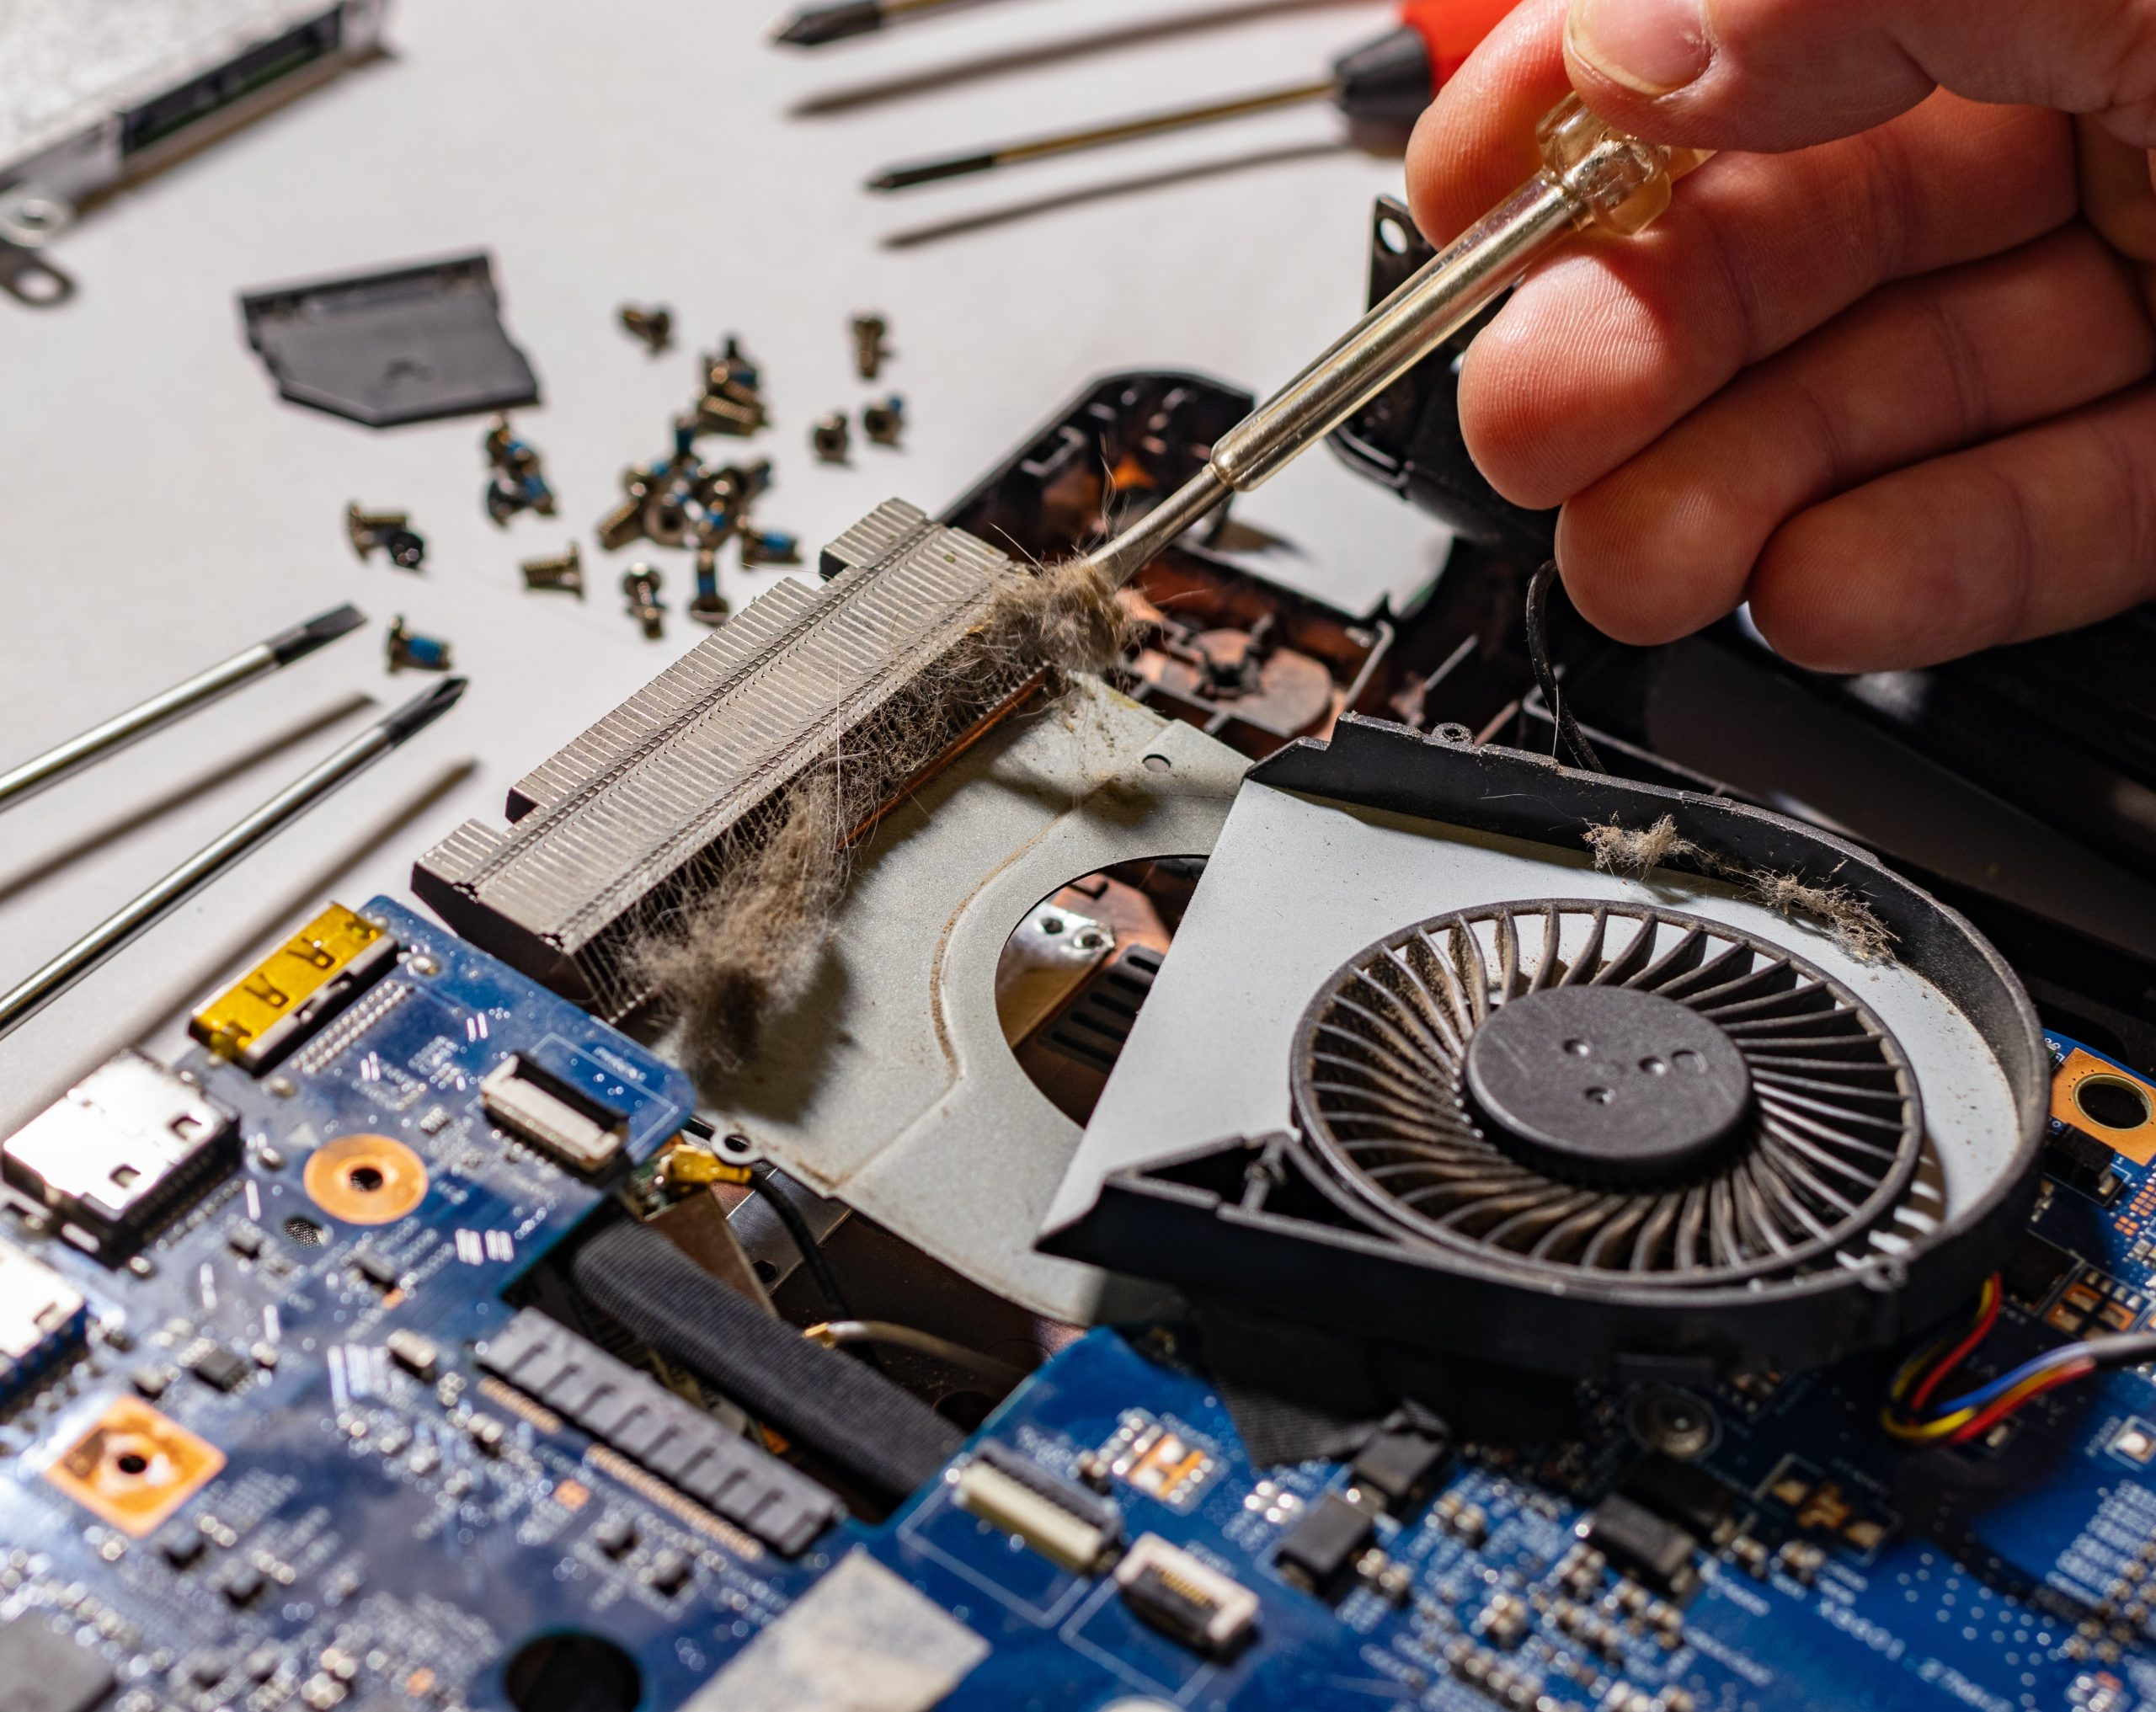 Repairman cleans screwdriver coat with radiator laptop. Hair clogged cooling system of notebook. The master repairs the laptop from overheating. Screws and screwdrivers are on the table.